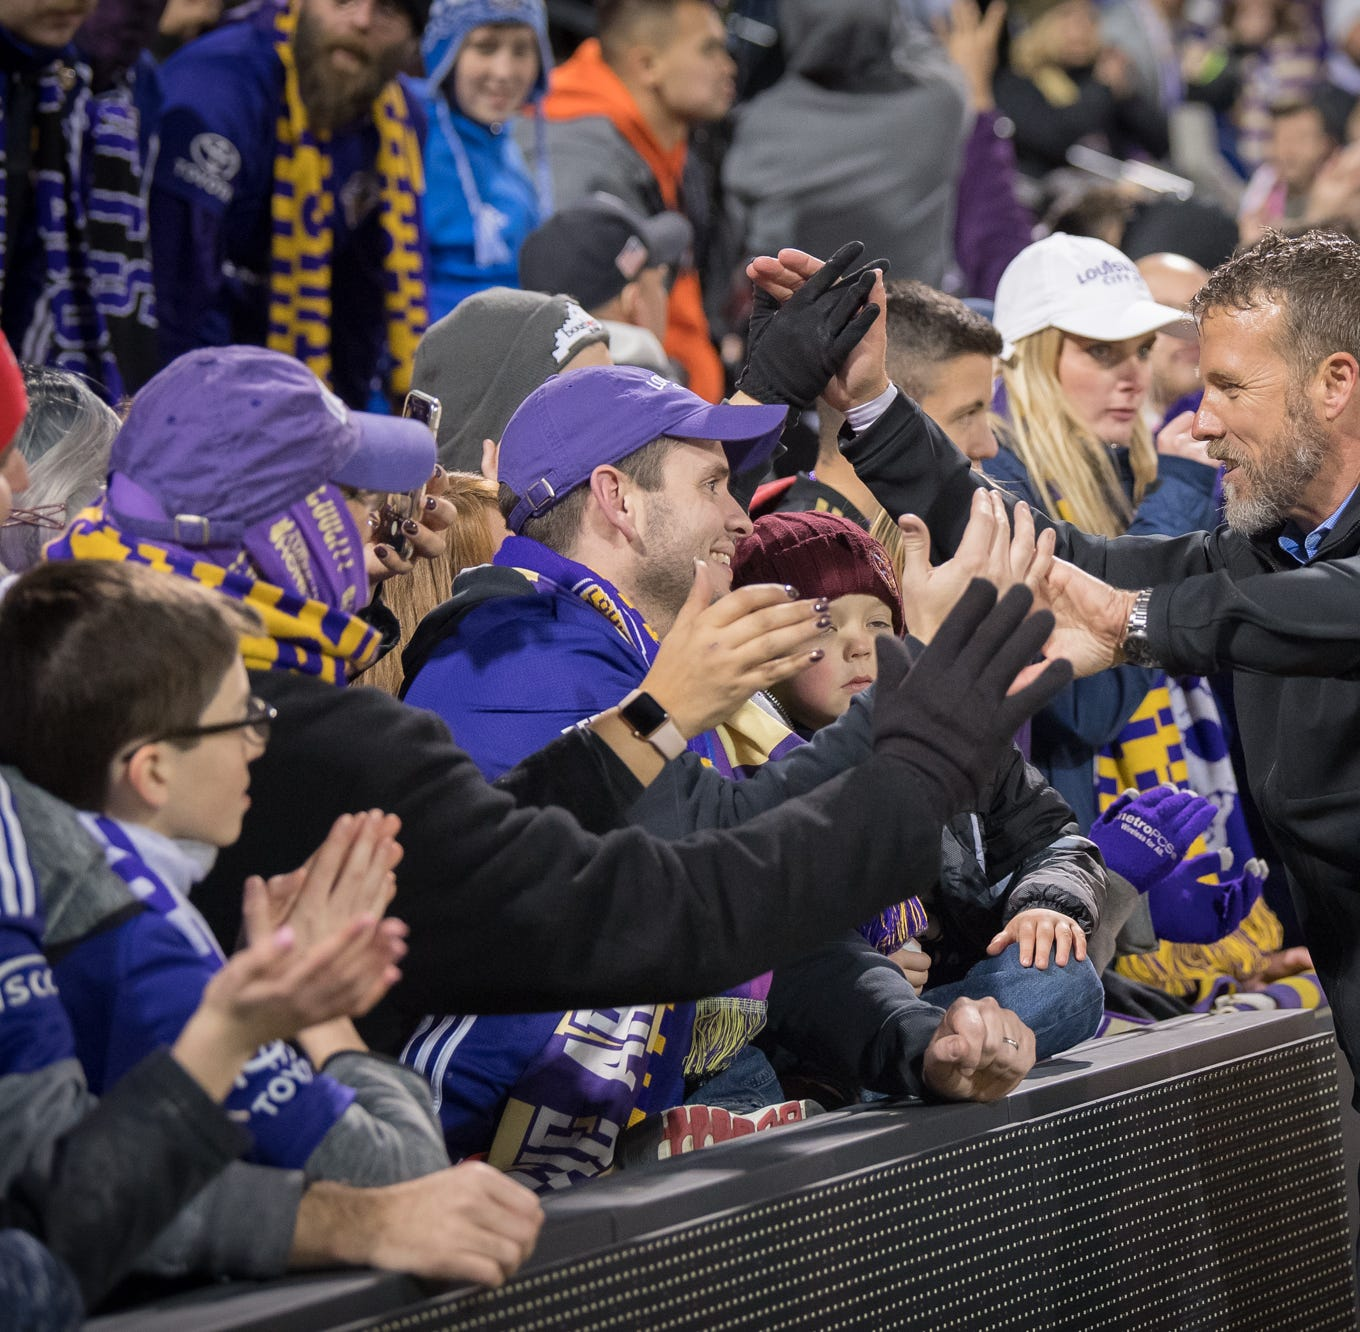 Louisville City FC coach gives us his 3 favorite moments from this season